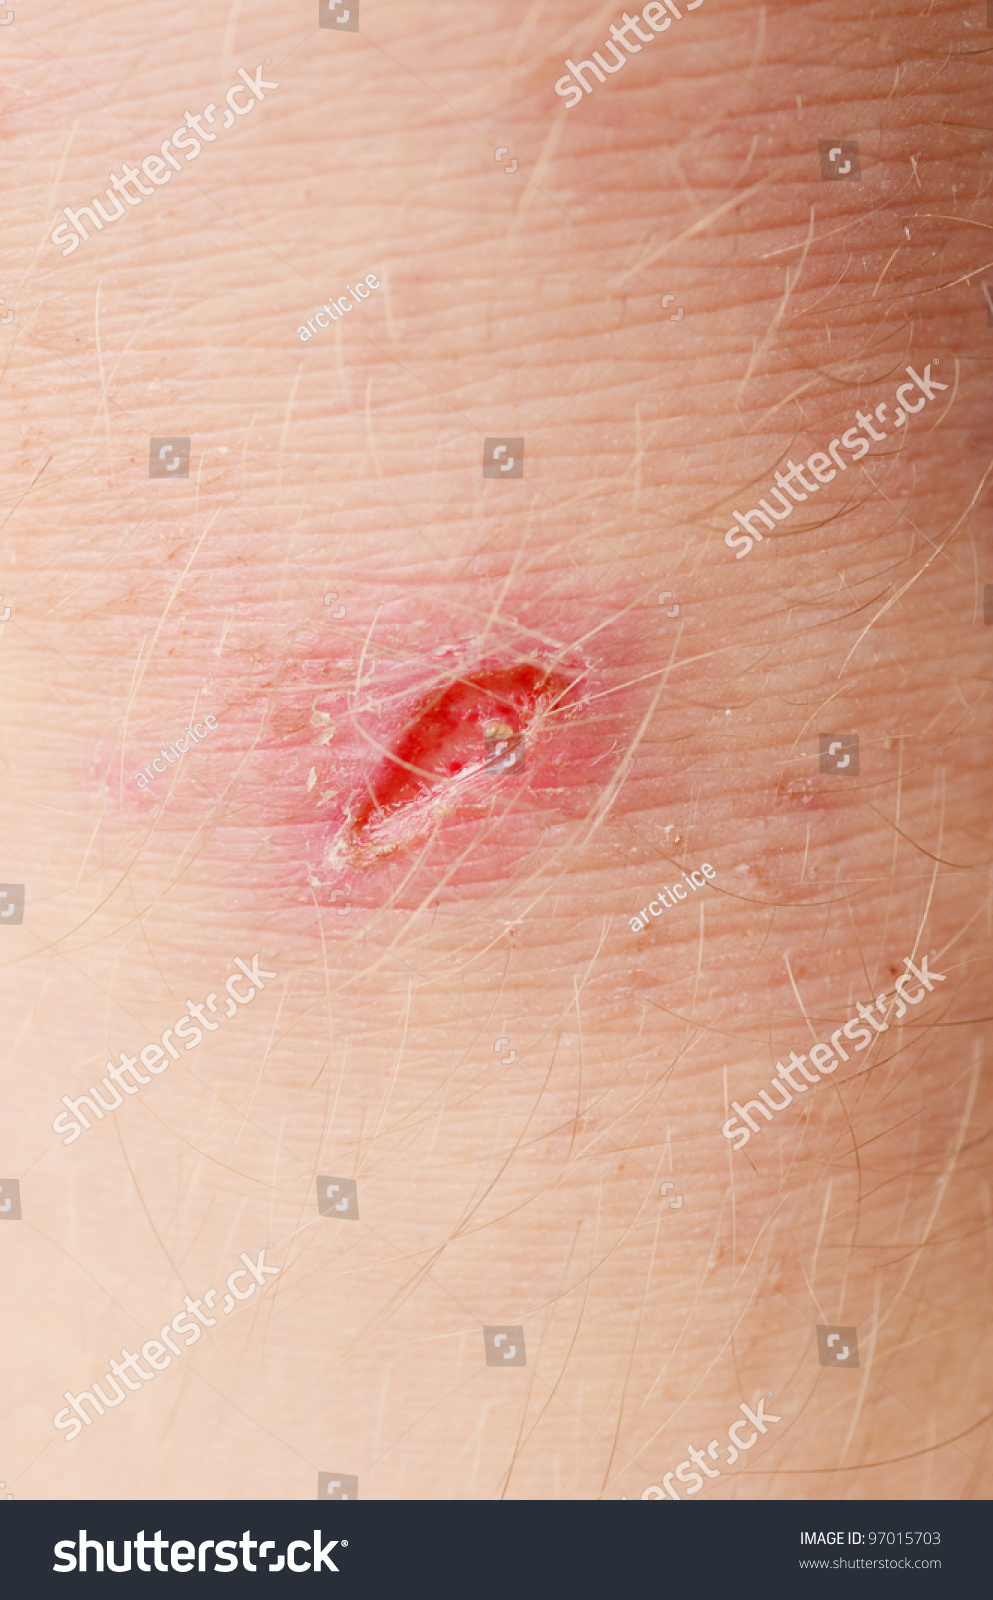 scar on human skin stock photo 97015703 scar on human skin stock photo 97015703